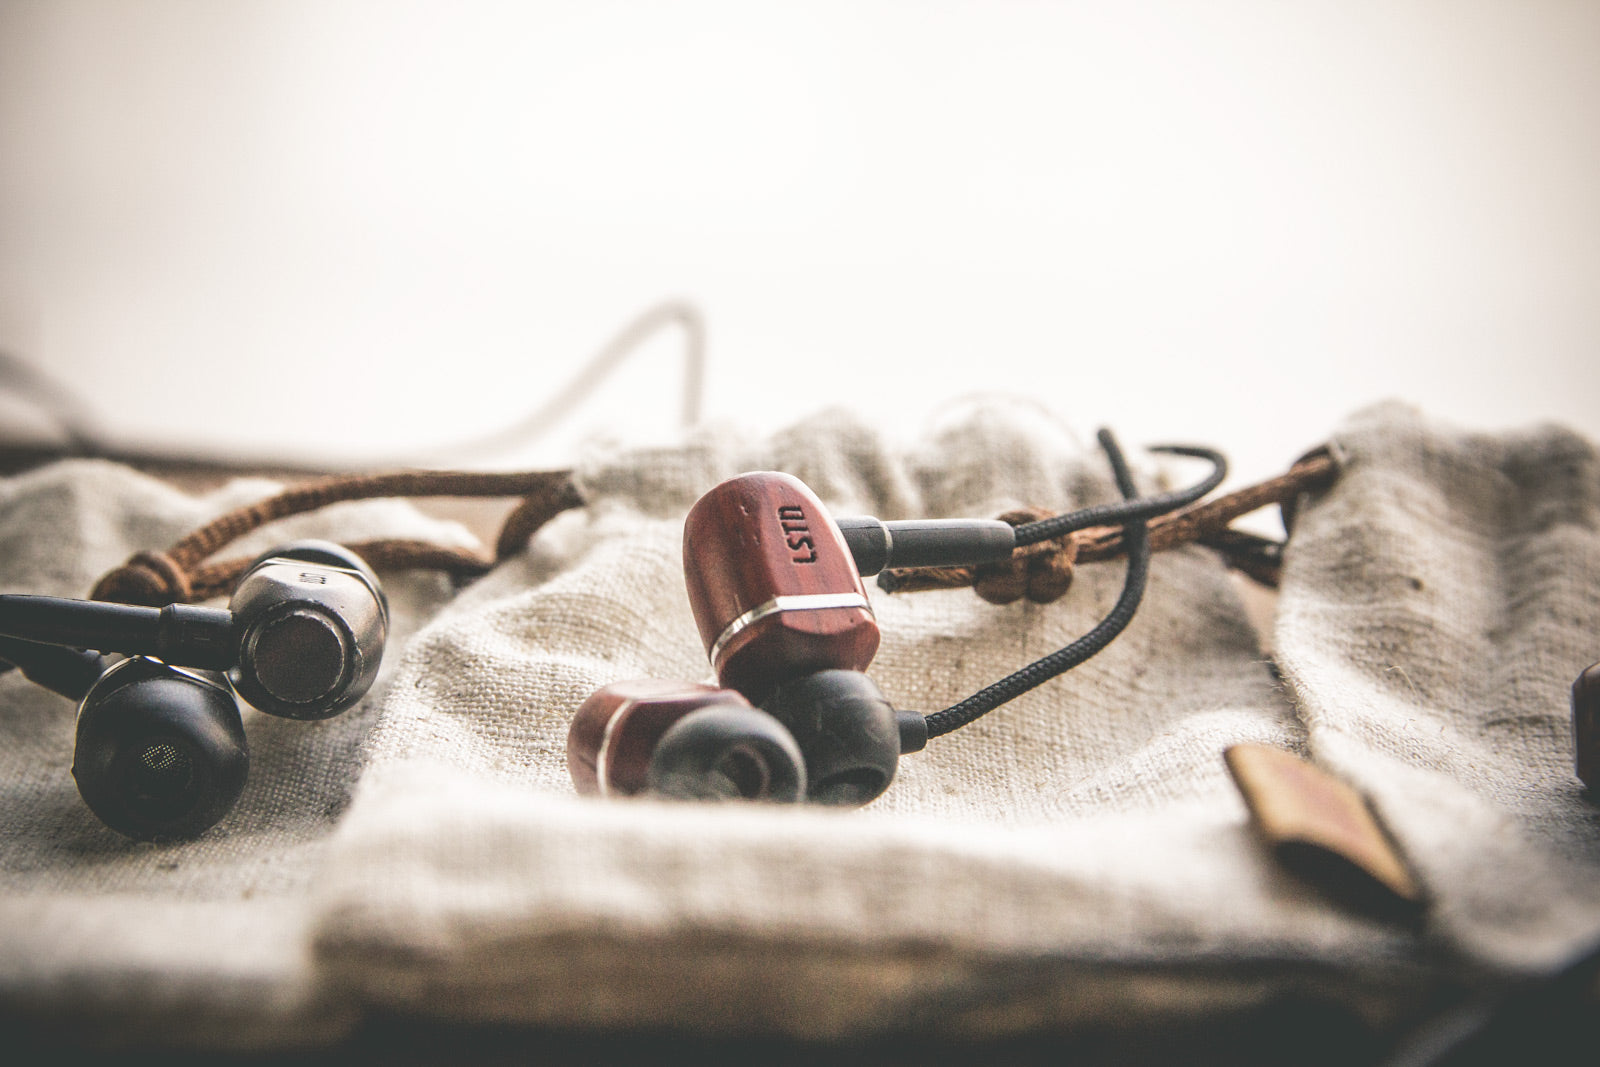 lstn sound bowery earbuds for corporate gifts and holiday gifts